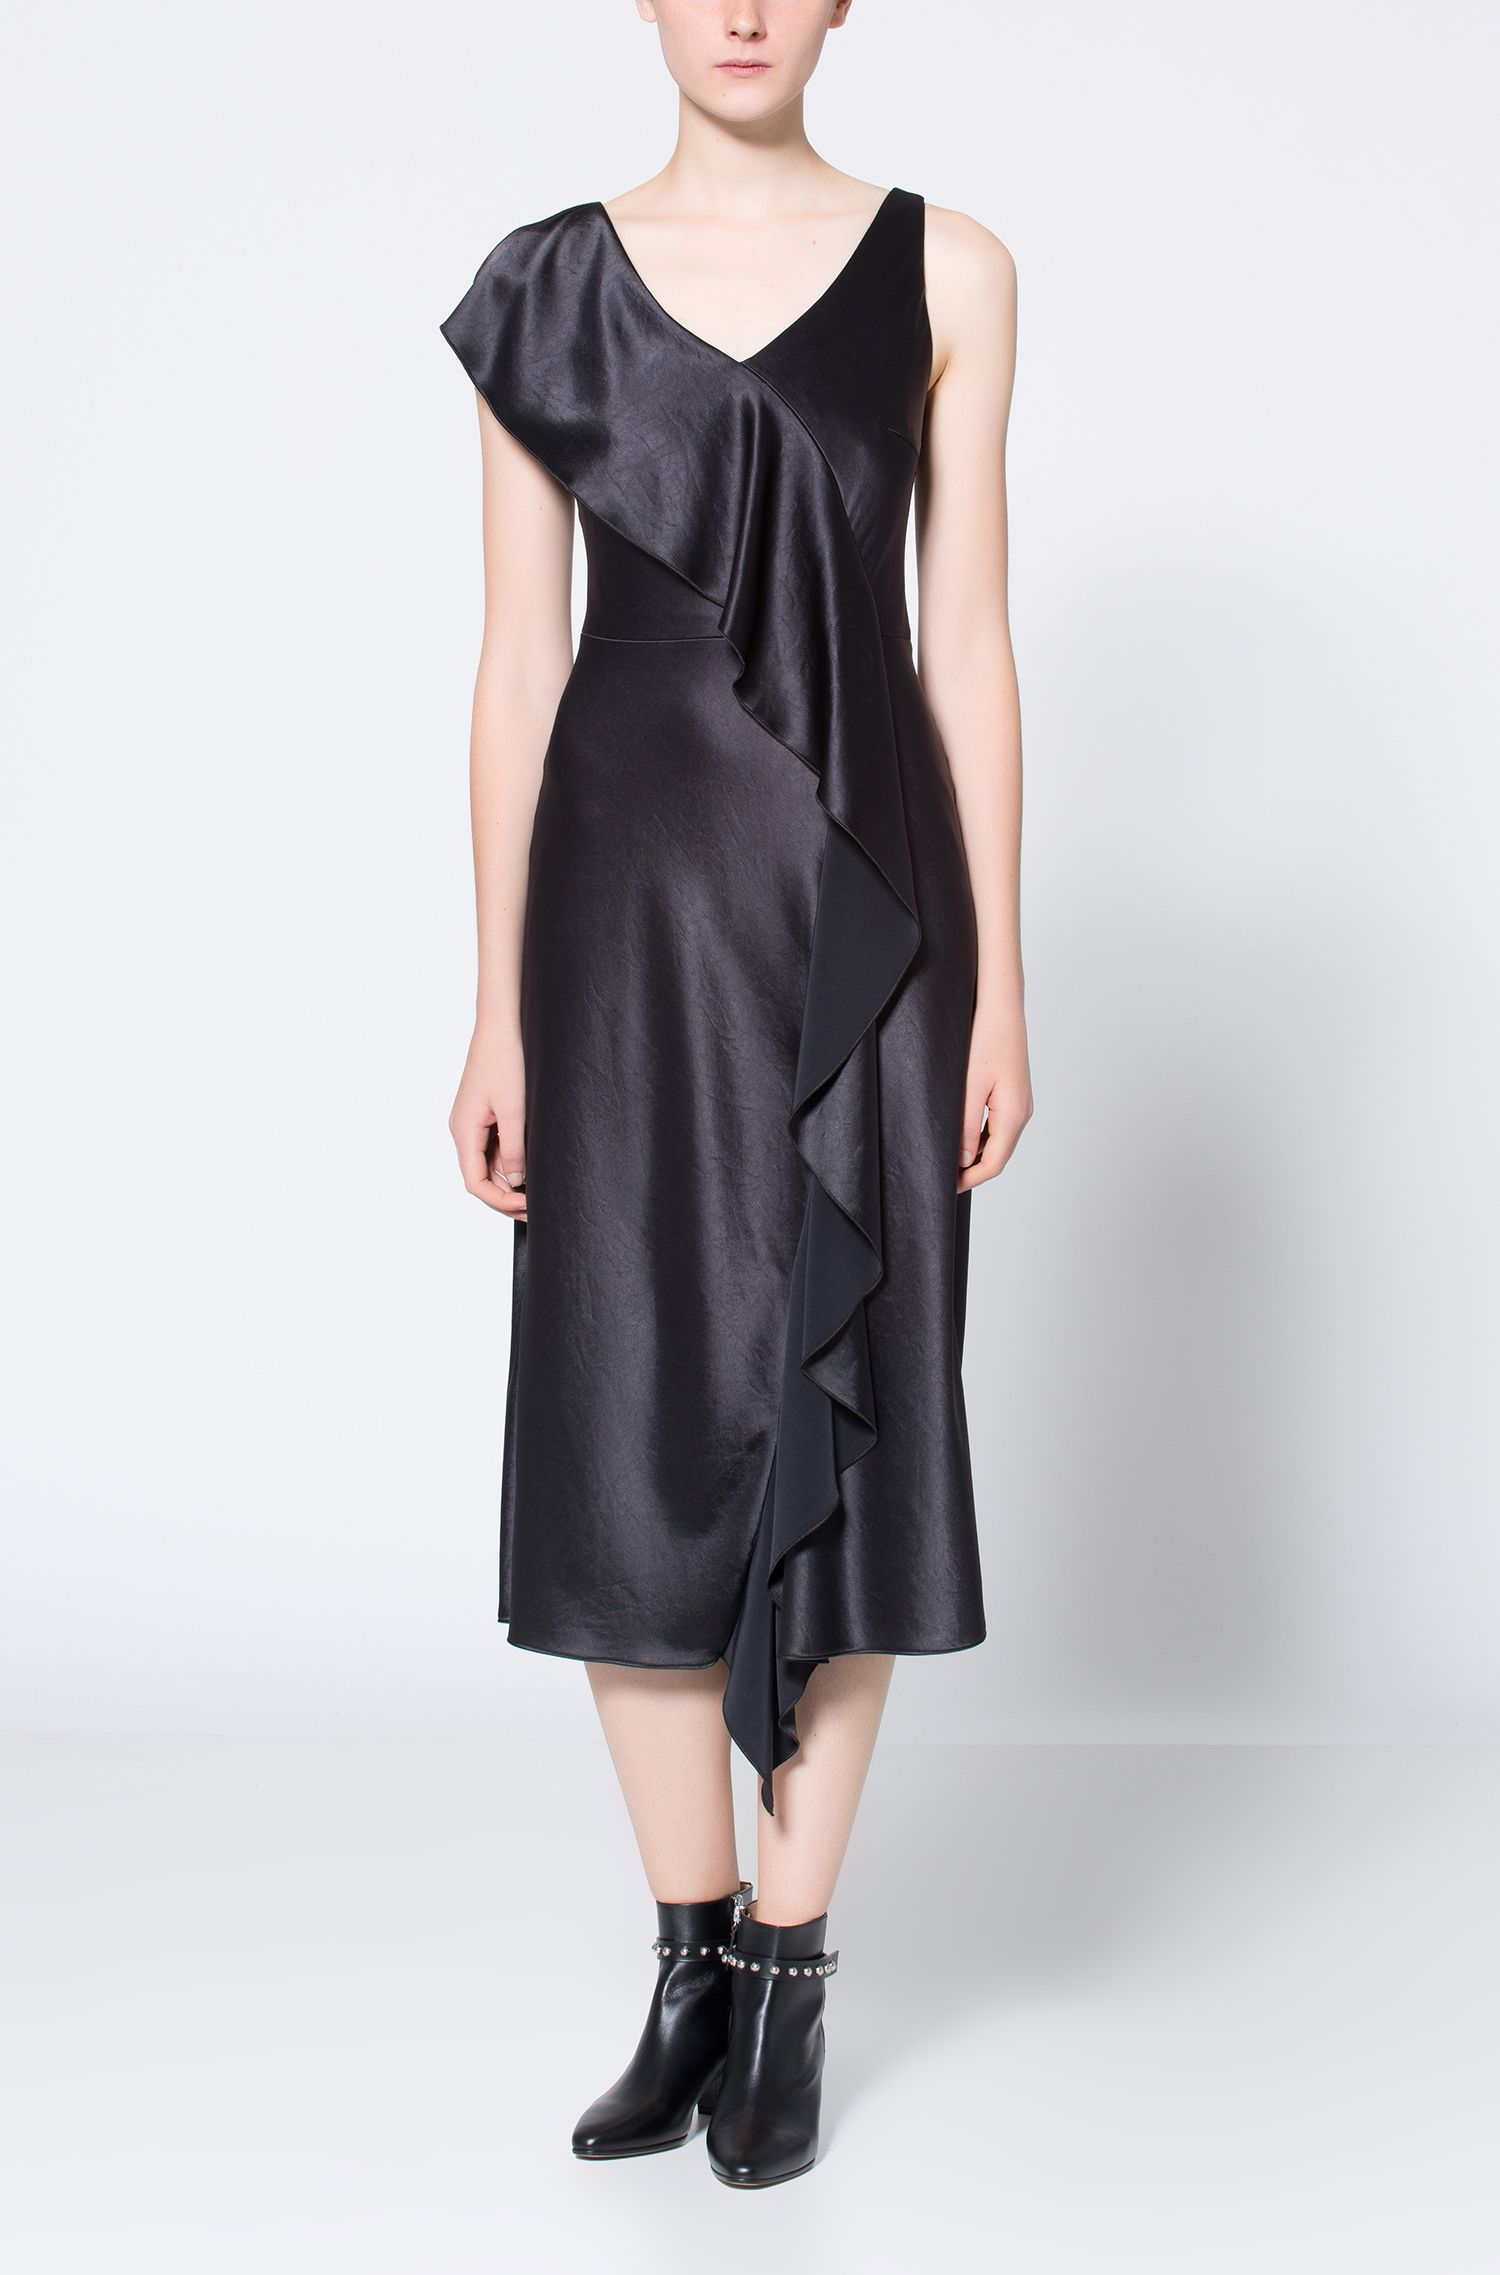 Sleeveless mid-length dress with waterfall front